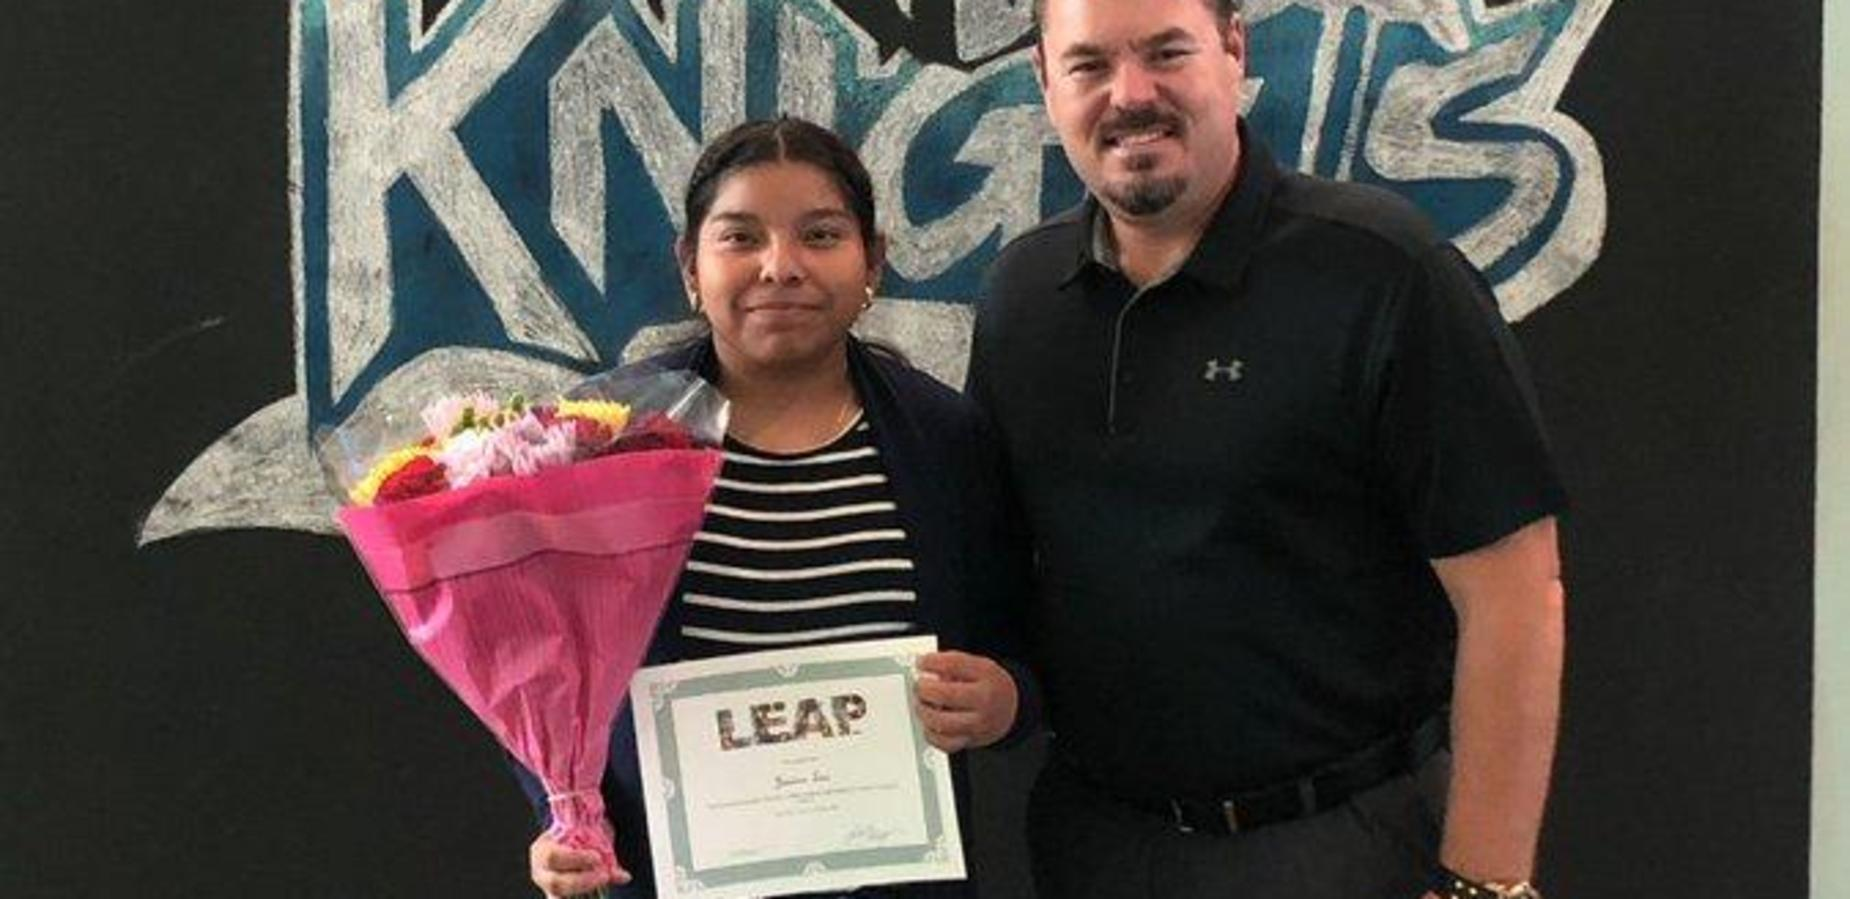 Congratulations to our LEAP student of the month for October, Jessica Lua, she exemplifies leadership and support for her school community. #LEAP #leapingintosuccess #ittakesavillage #proud2bepusd